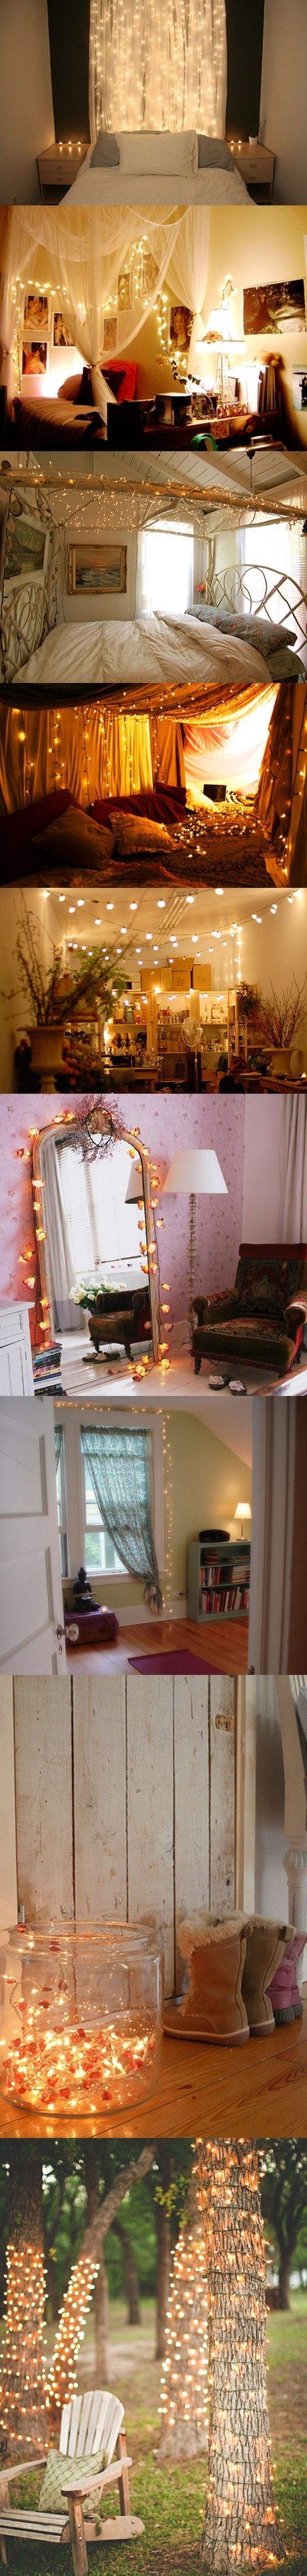 """Love the white lights! Could do a """"canopy"""" type thing around your bed with the white panels and white lights like the second picture down from the top. Very cozy!!"""